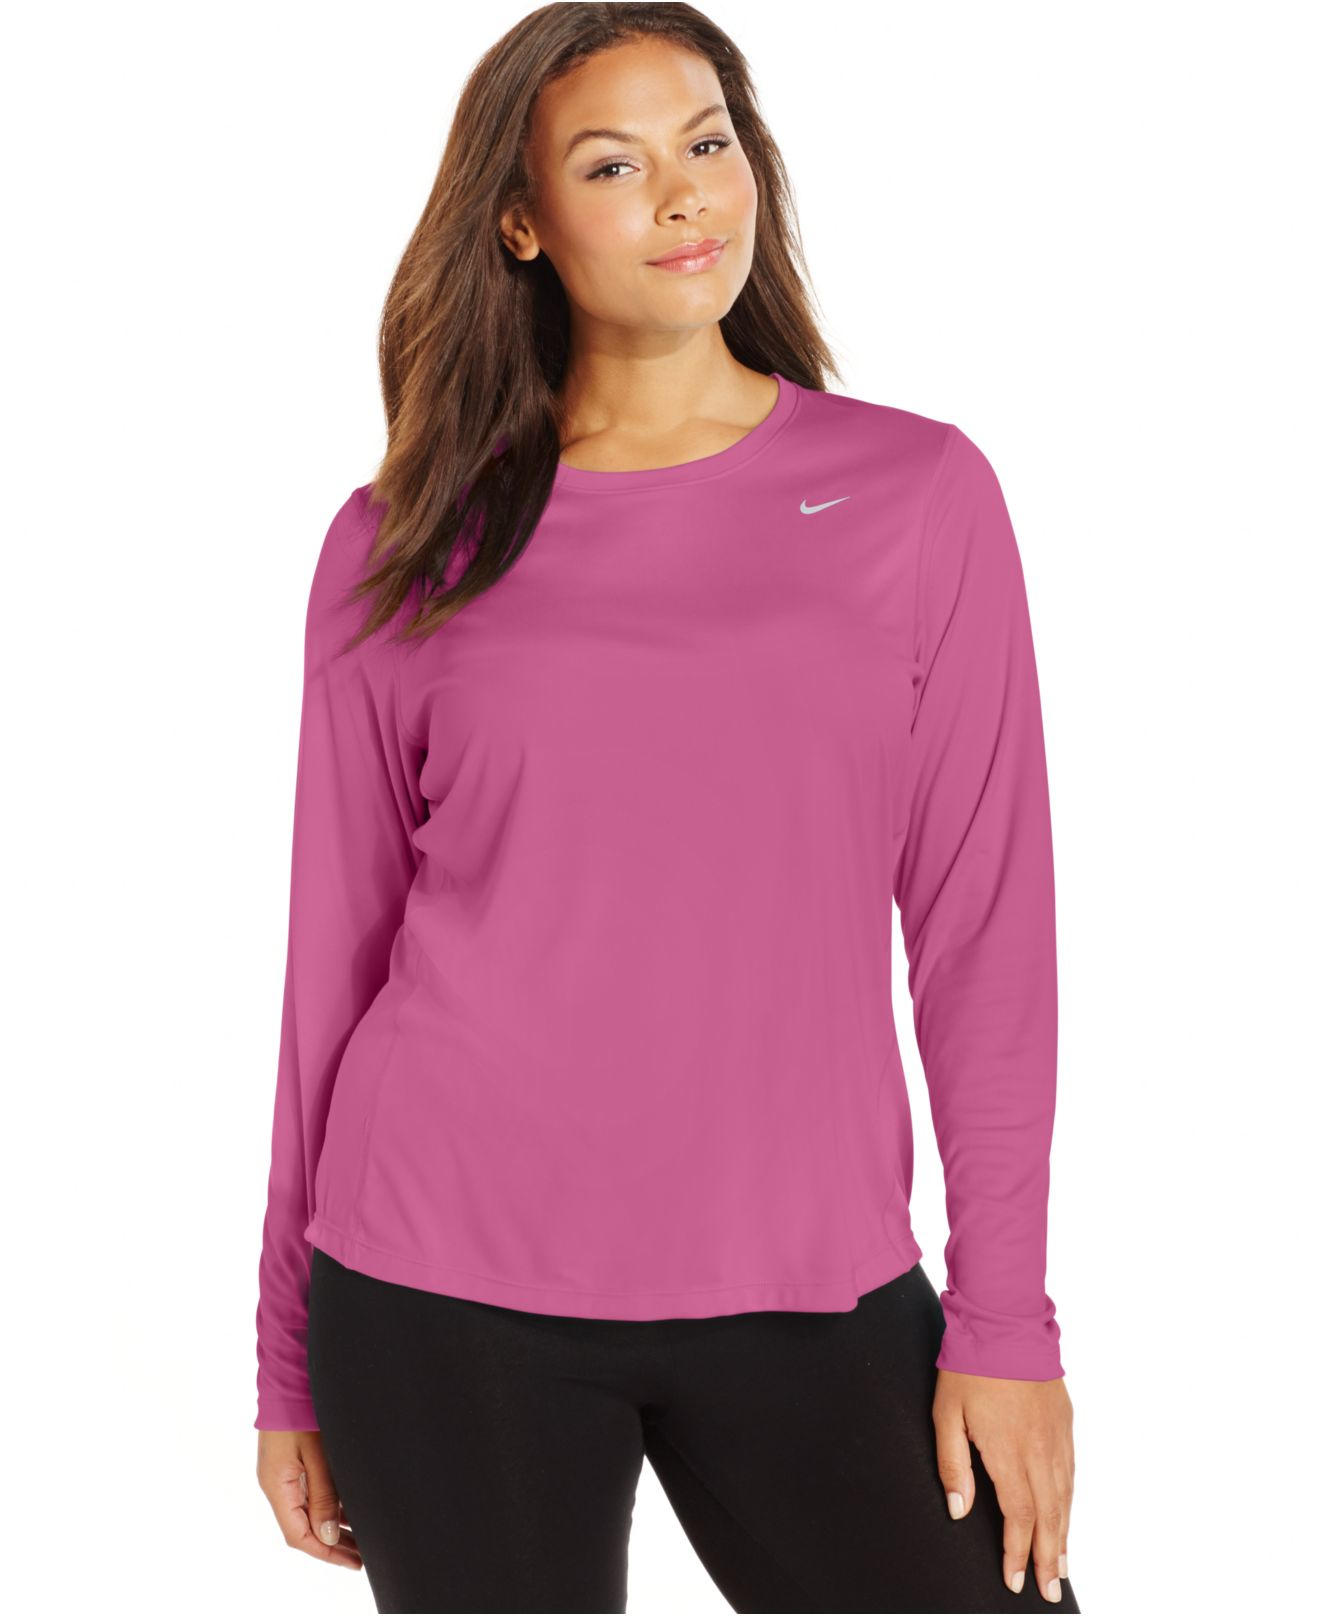 Lyst nike plus size long sleeve dri fit running top in pink for Hot pink running shirt